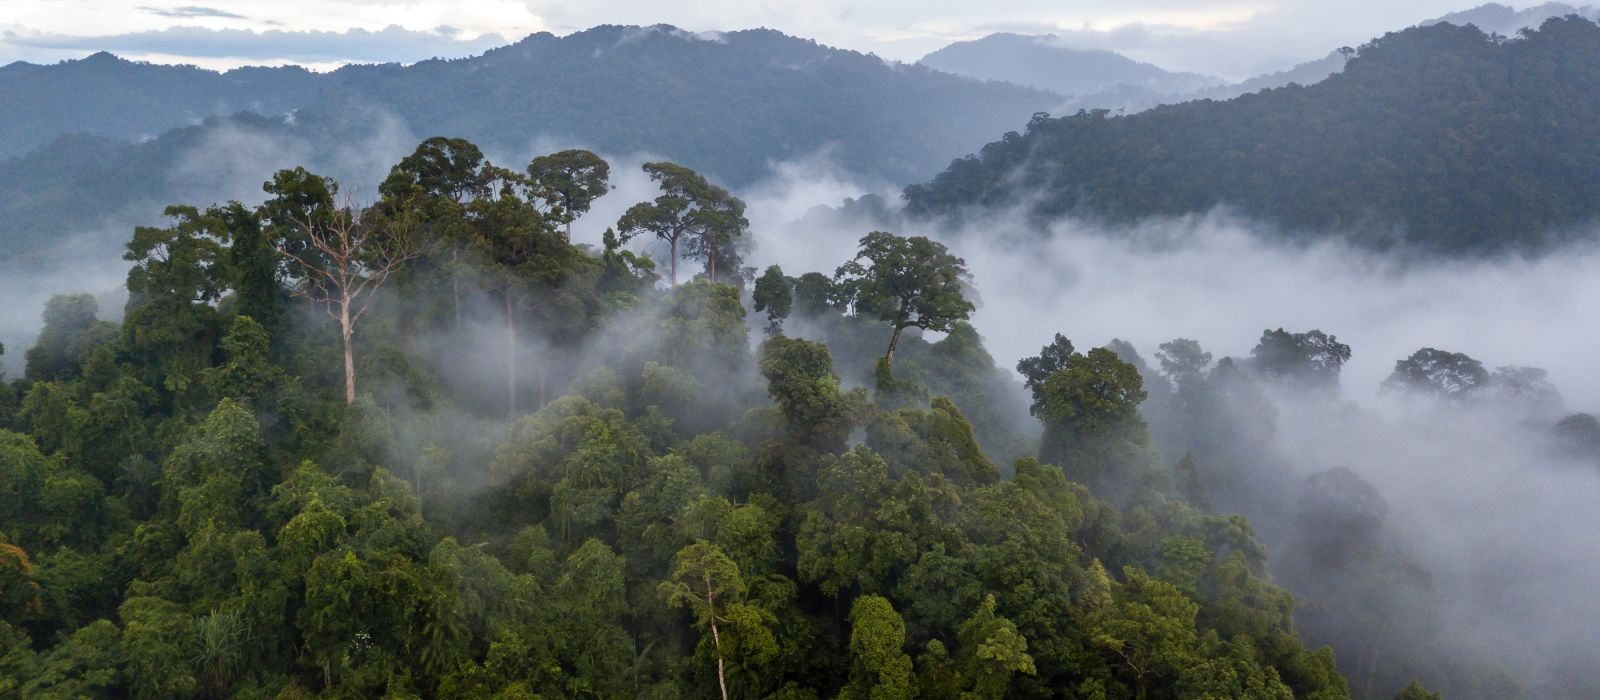 Aerial view of mist, cloud and fog hanging over a lush tropical rainforest after a storm, Brazil, South America